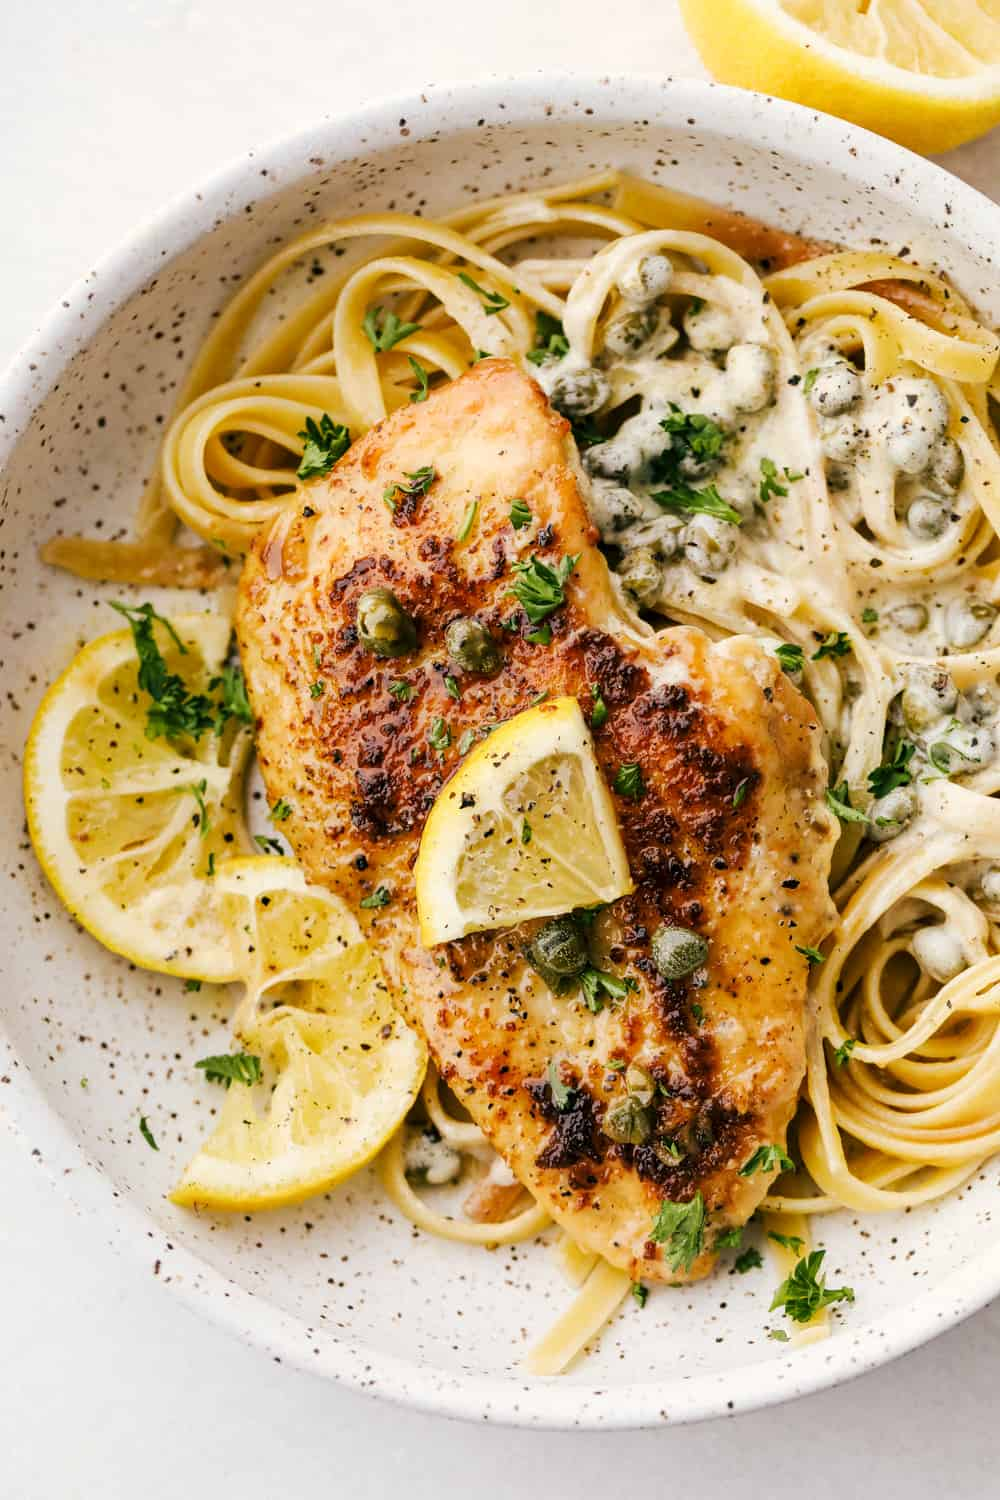 A chicken breasts with lemon piccata sauce on a bed of noodles in a bowl.